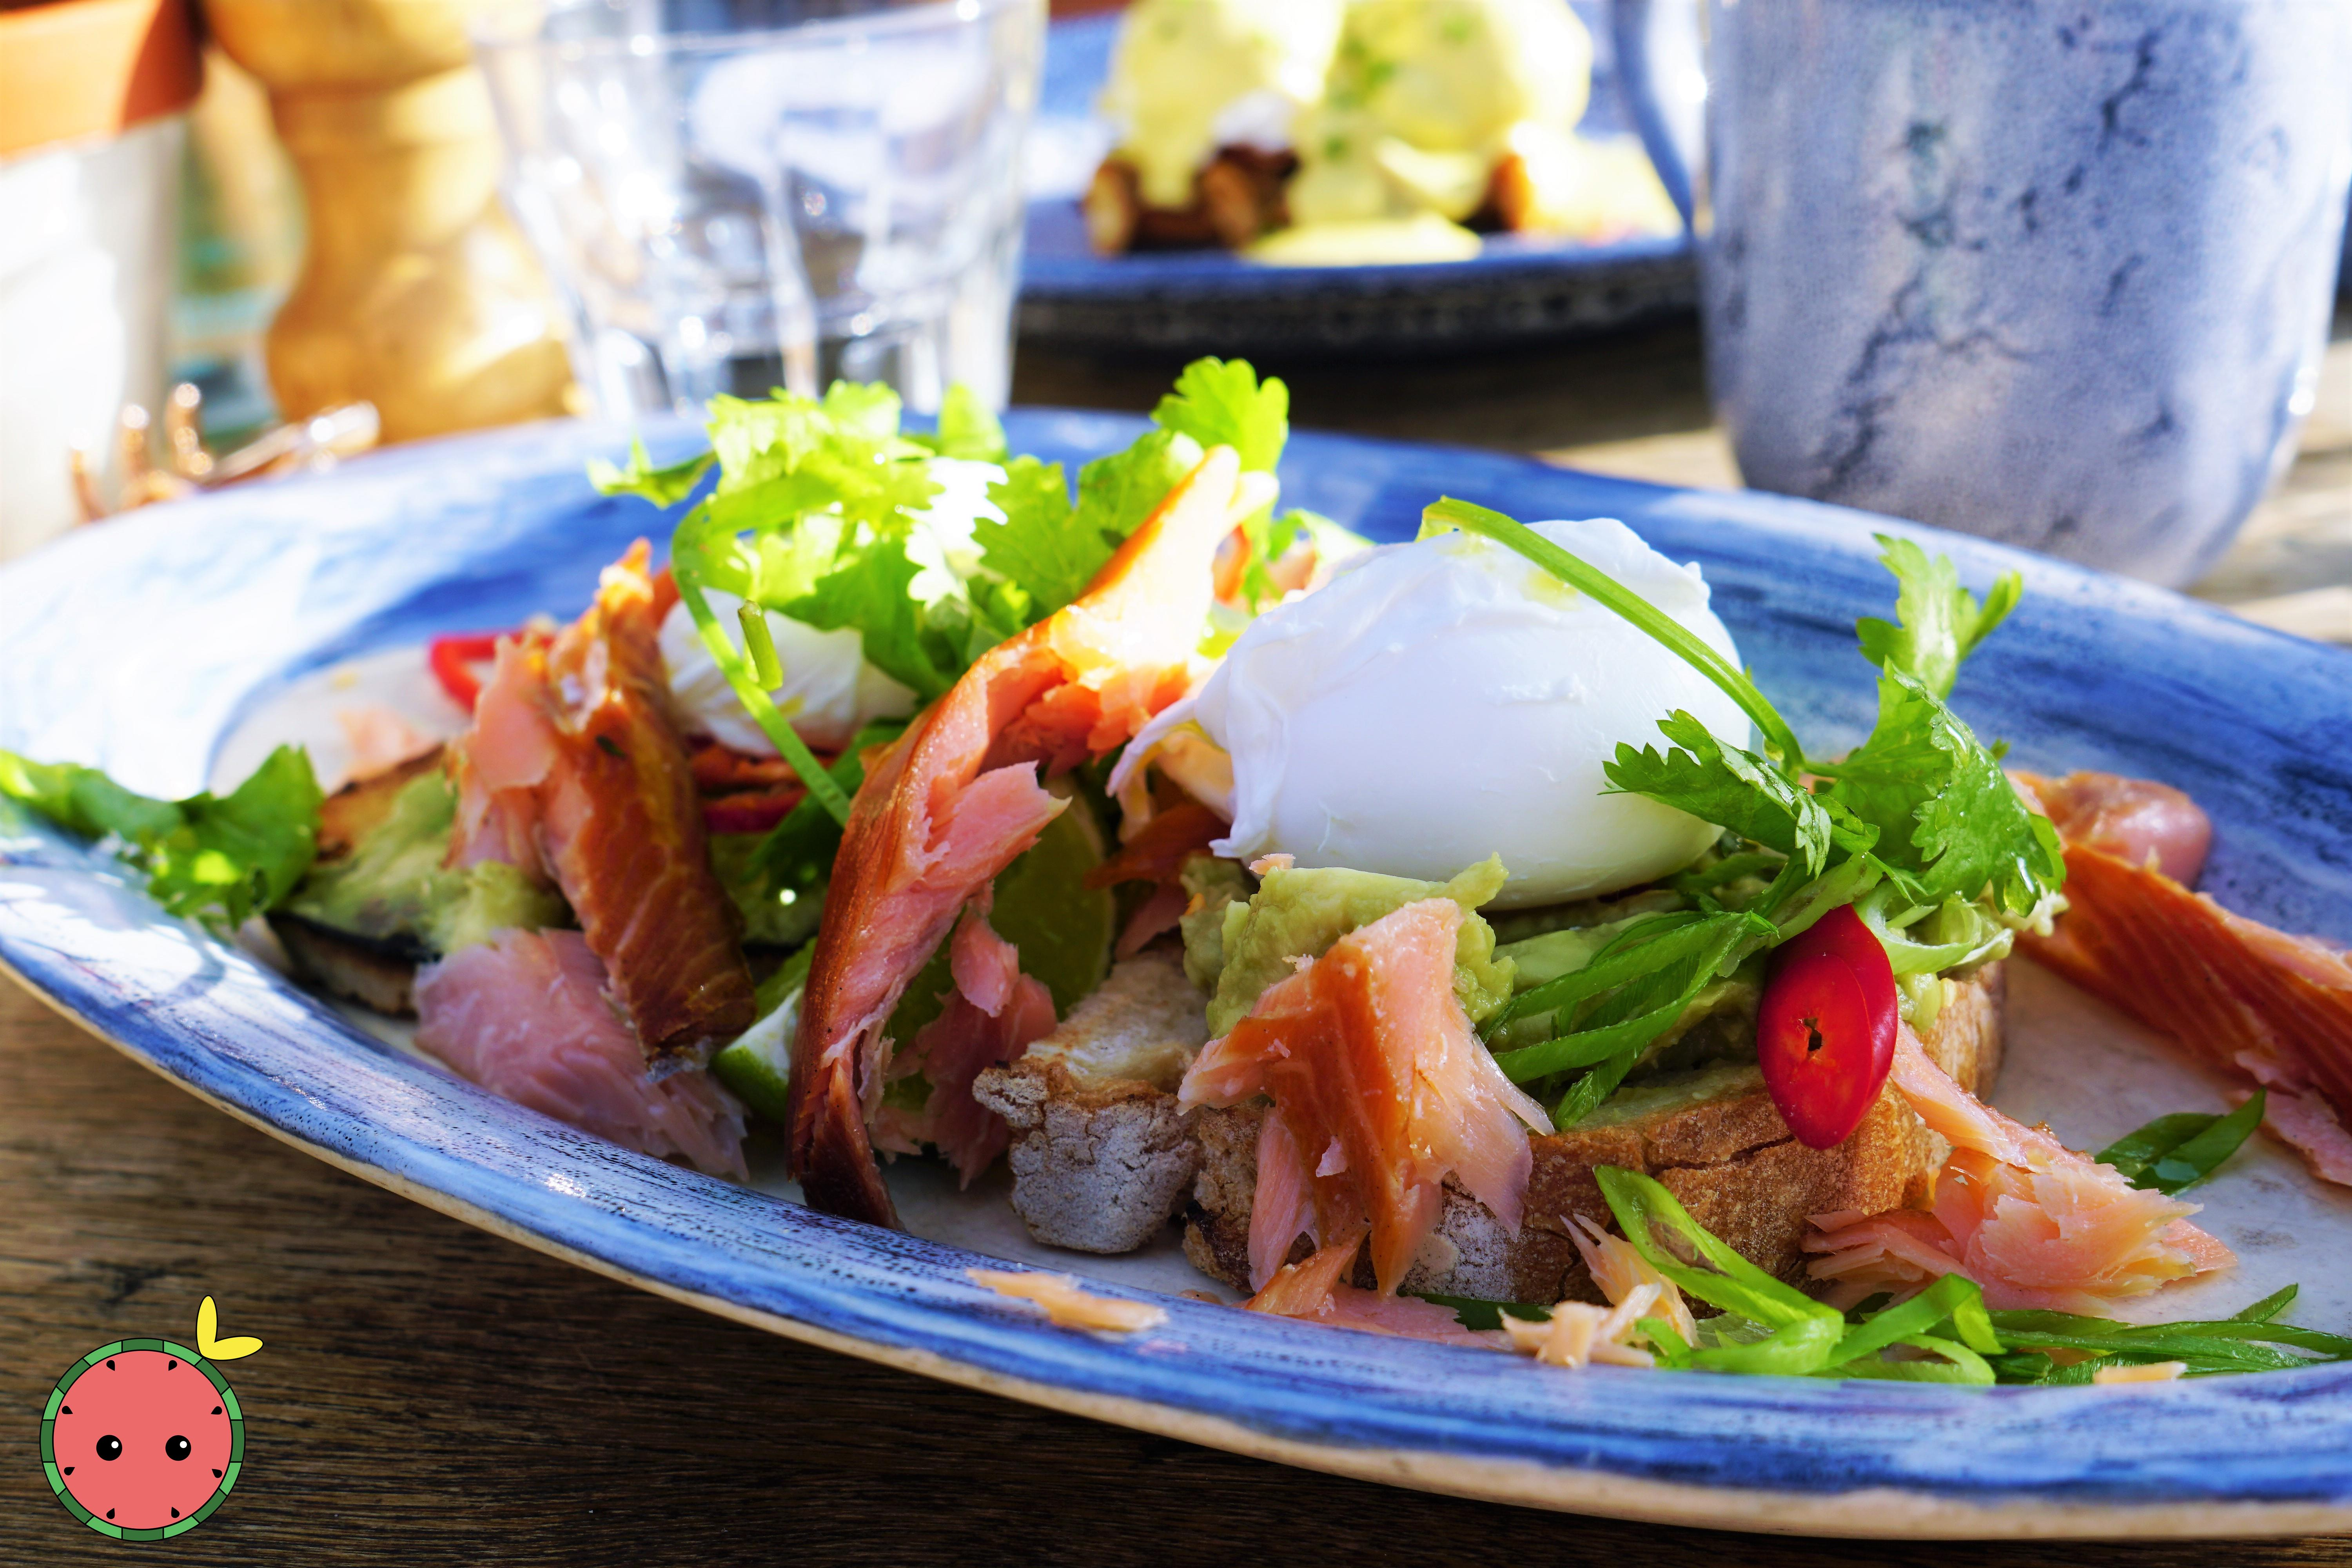 Smashed Avocado and Poached Eggs over To